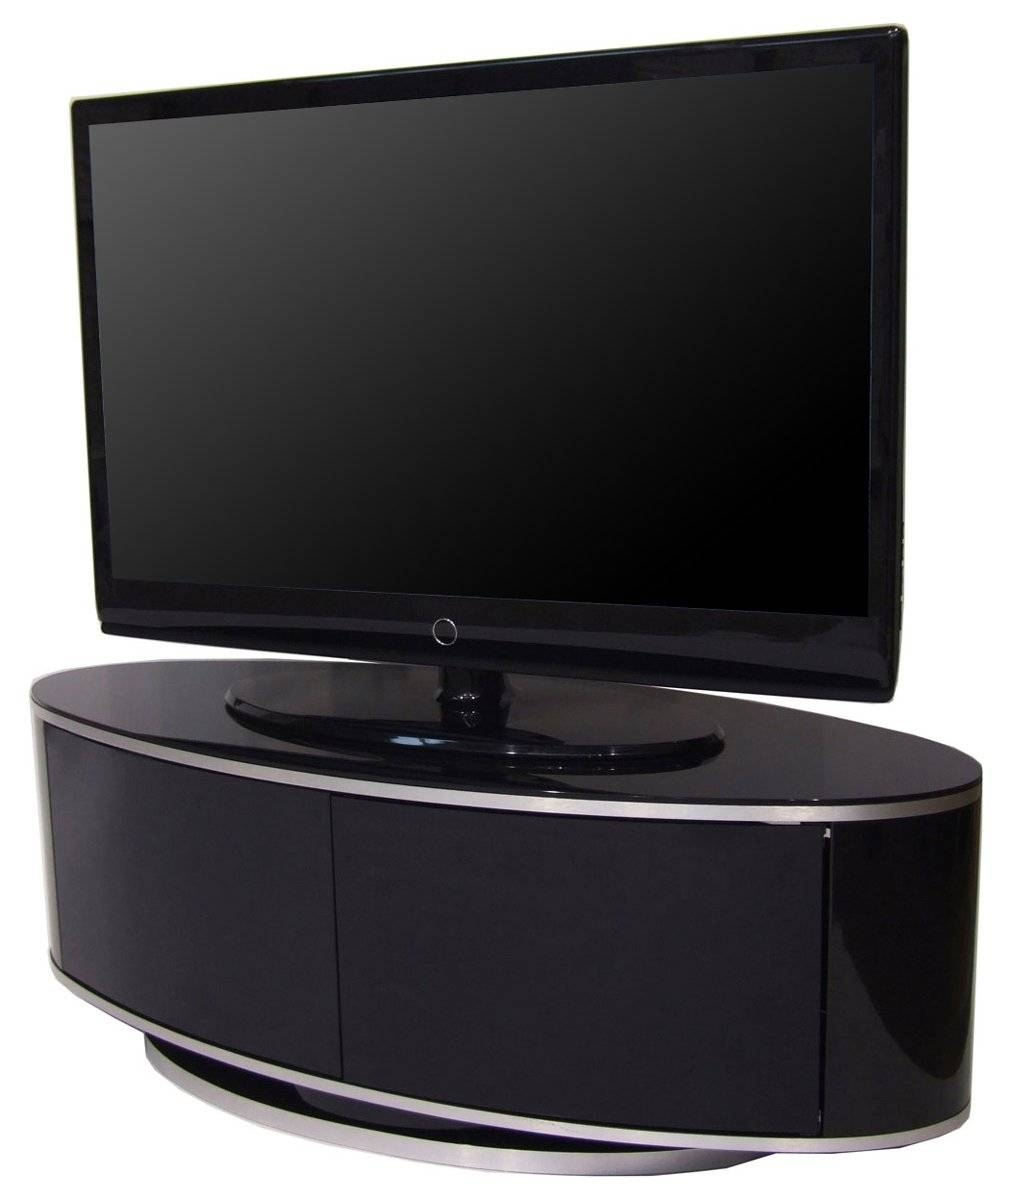 Tv Stands | Tv Units & Cabinets | The Plasma Centre regarding Shiny Black Tv Stands (Image 15 of 15)